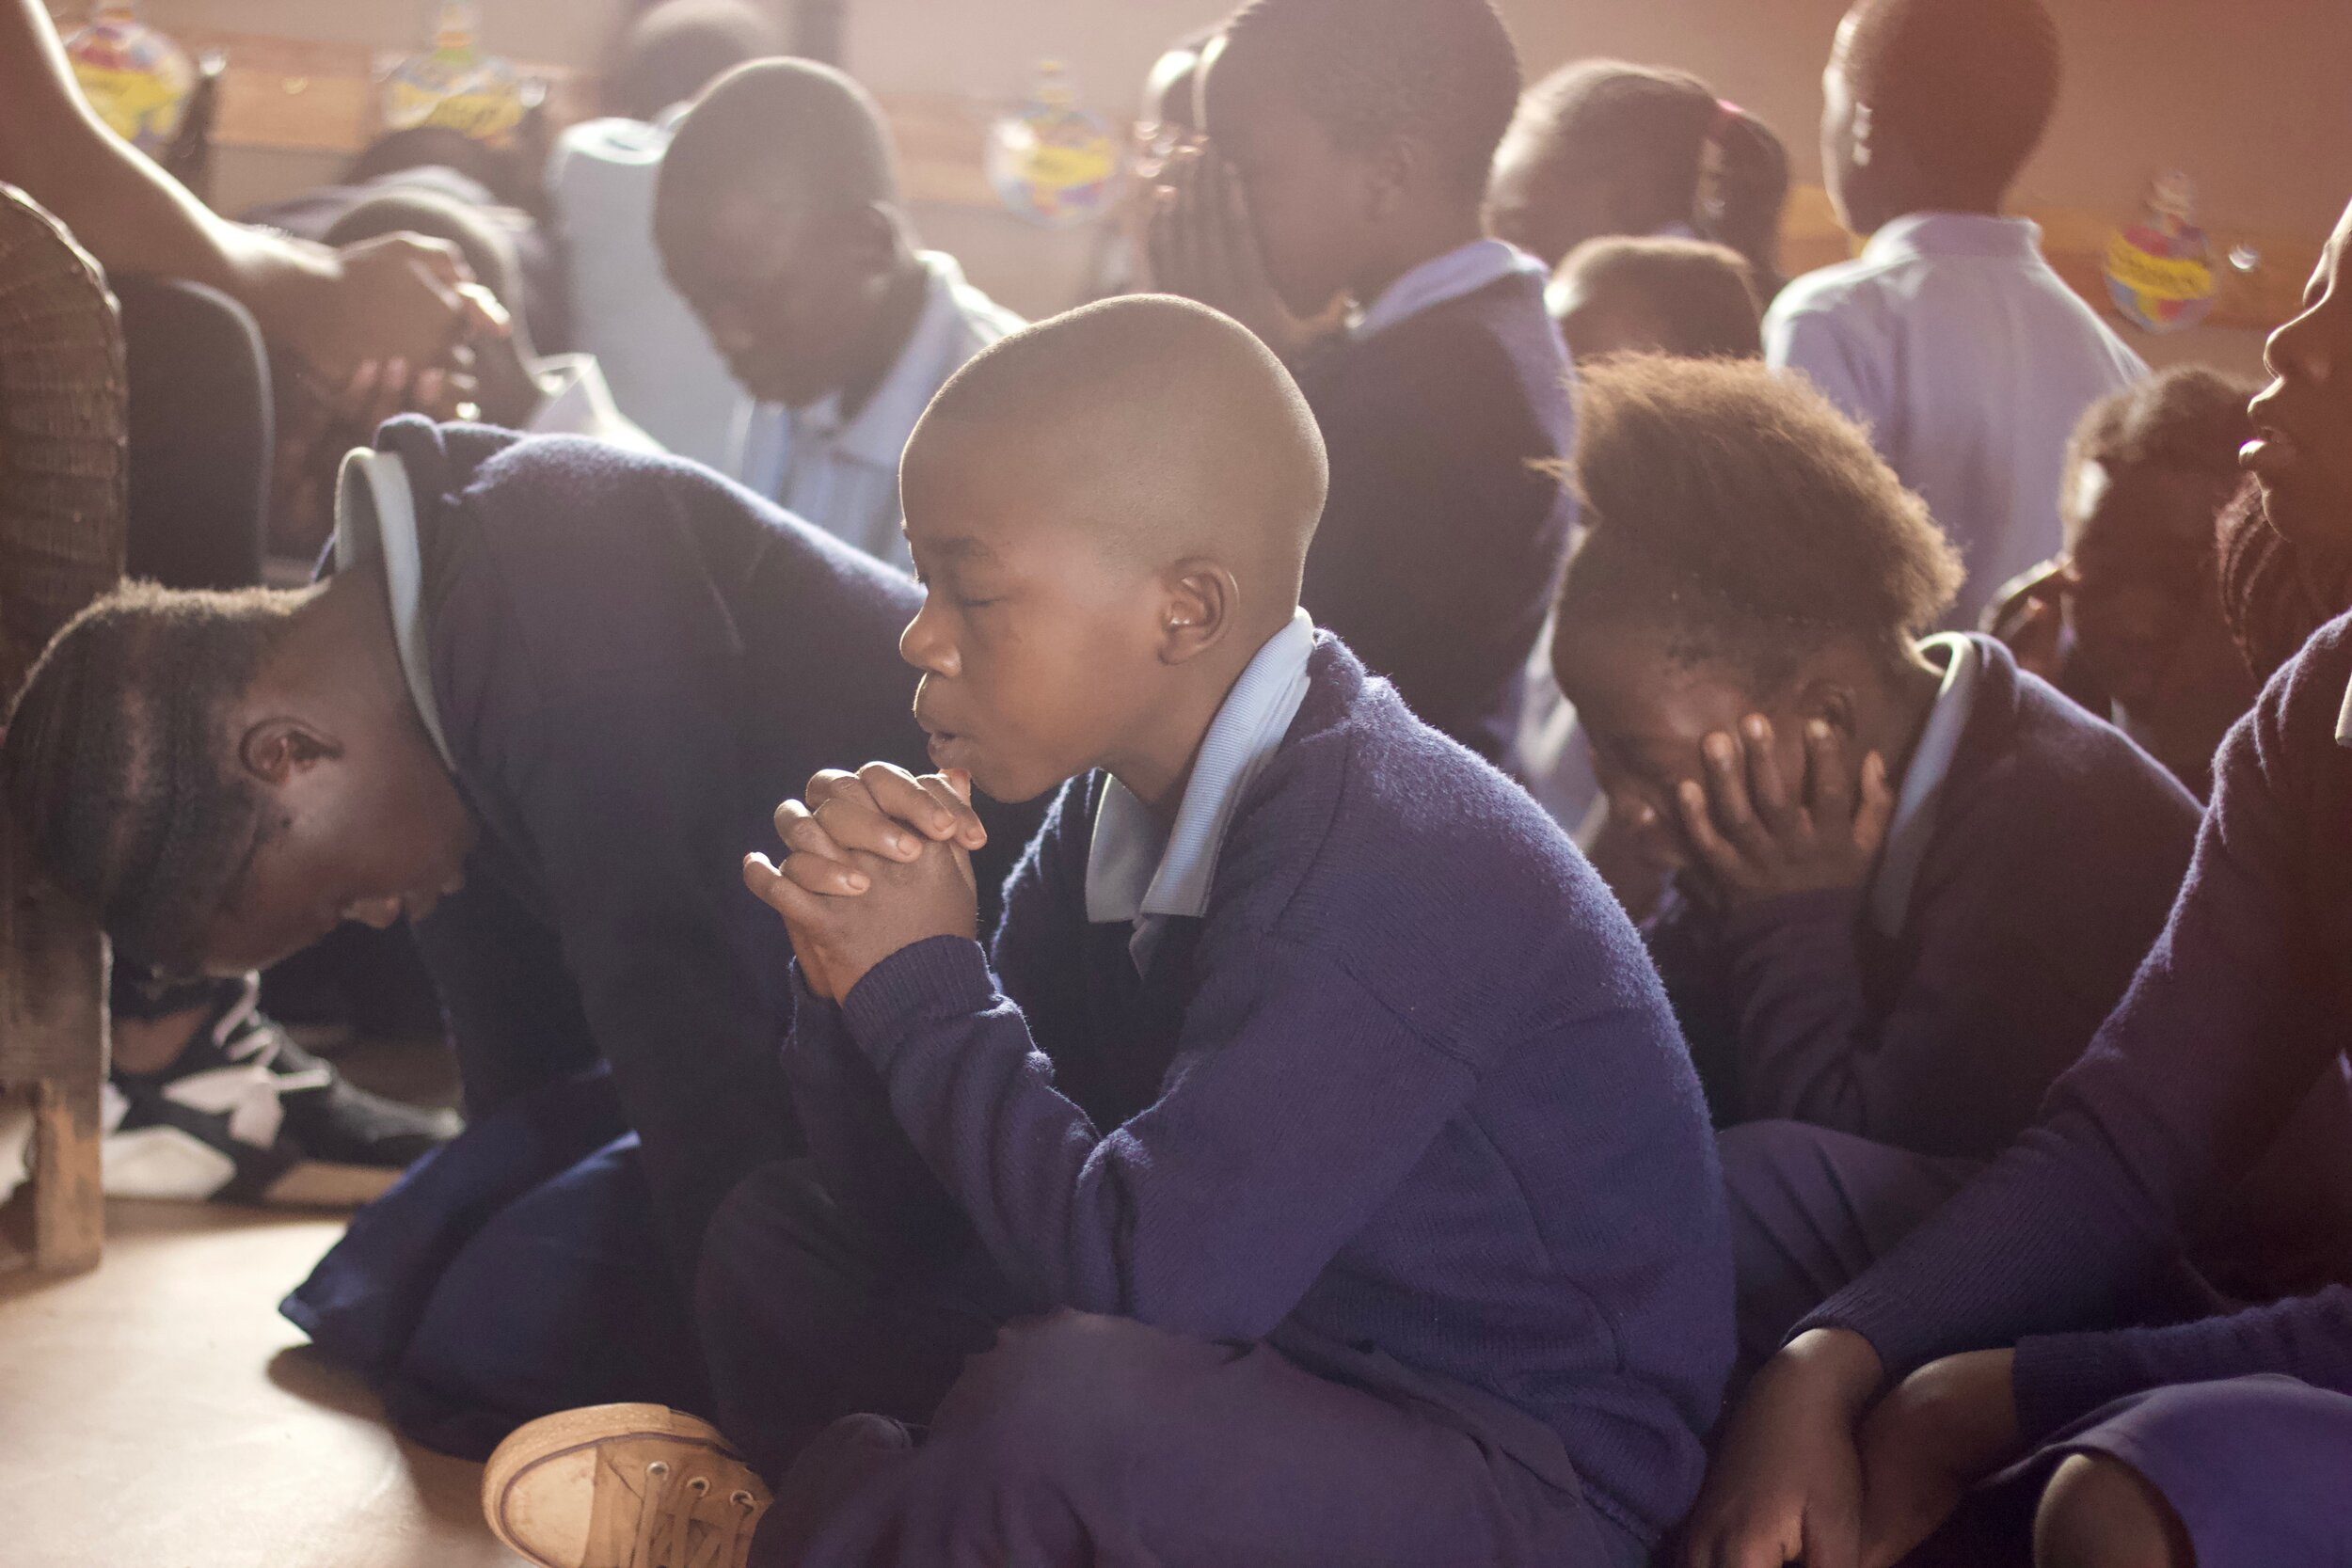 The first thing classes do is spend personal time with God. Students and teachers read a devotion, strengthening their relationship with Christ. Then, they share prayer requests and praises. Before moving on to other subjects, they talk to their Father - thanking Him, praising Him, and praying to Him!